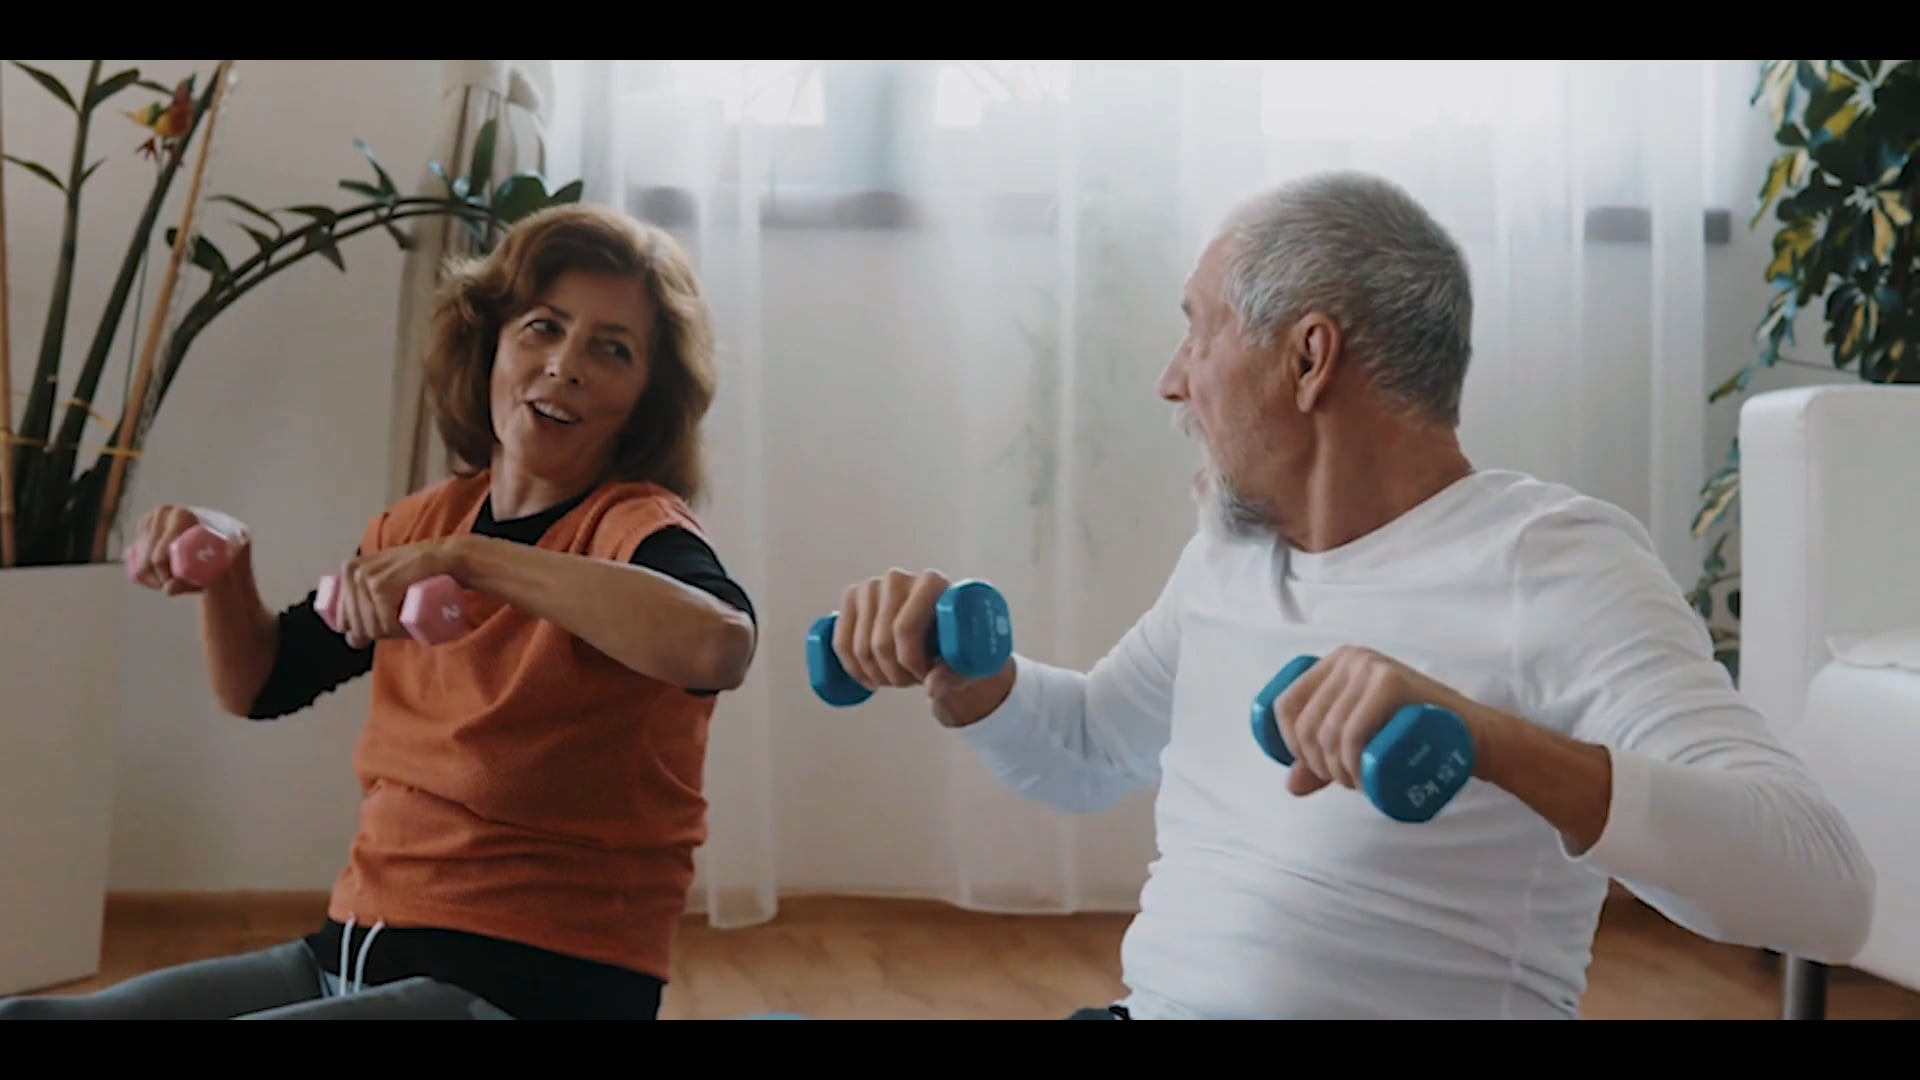 Procter & Gamble Ventures: Innovation for Aging and Activities of Daily Living at Home